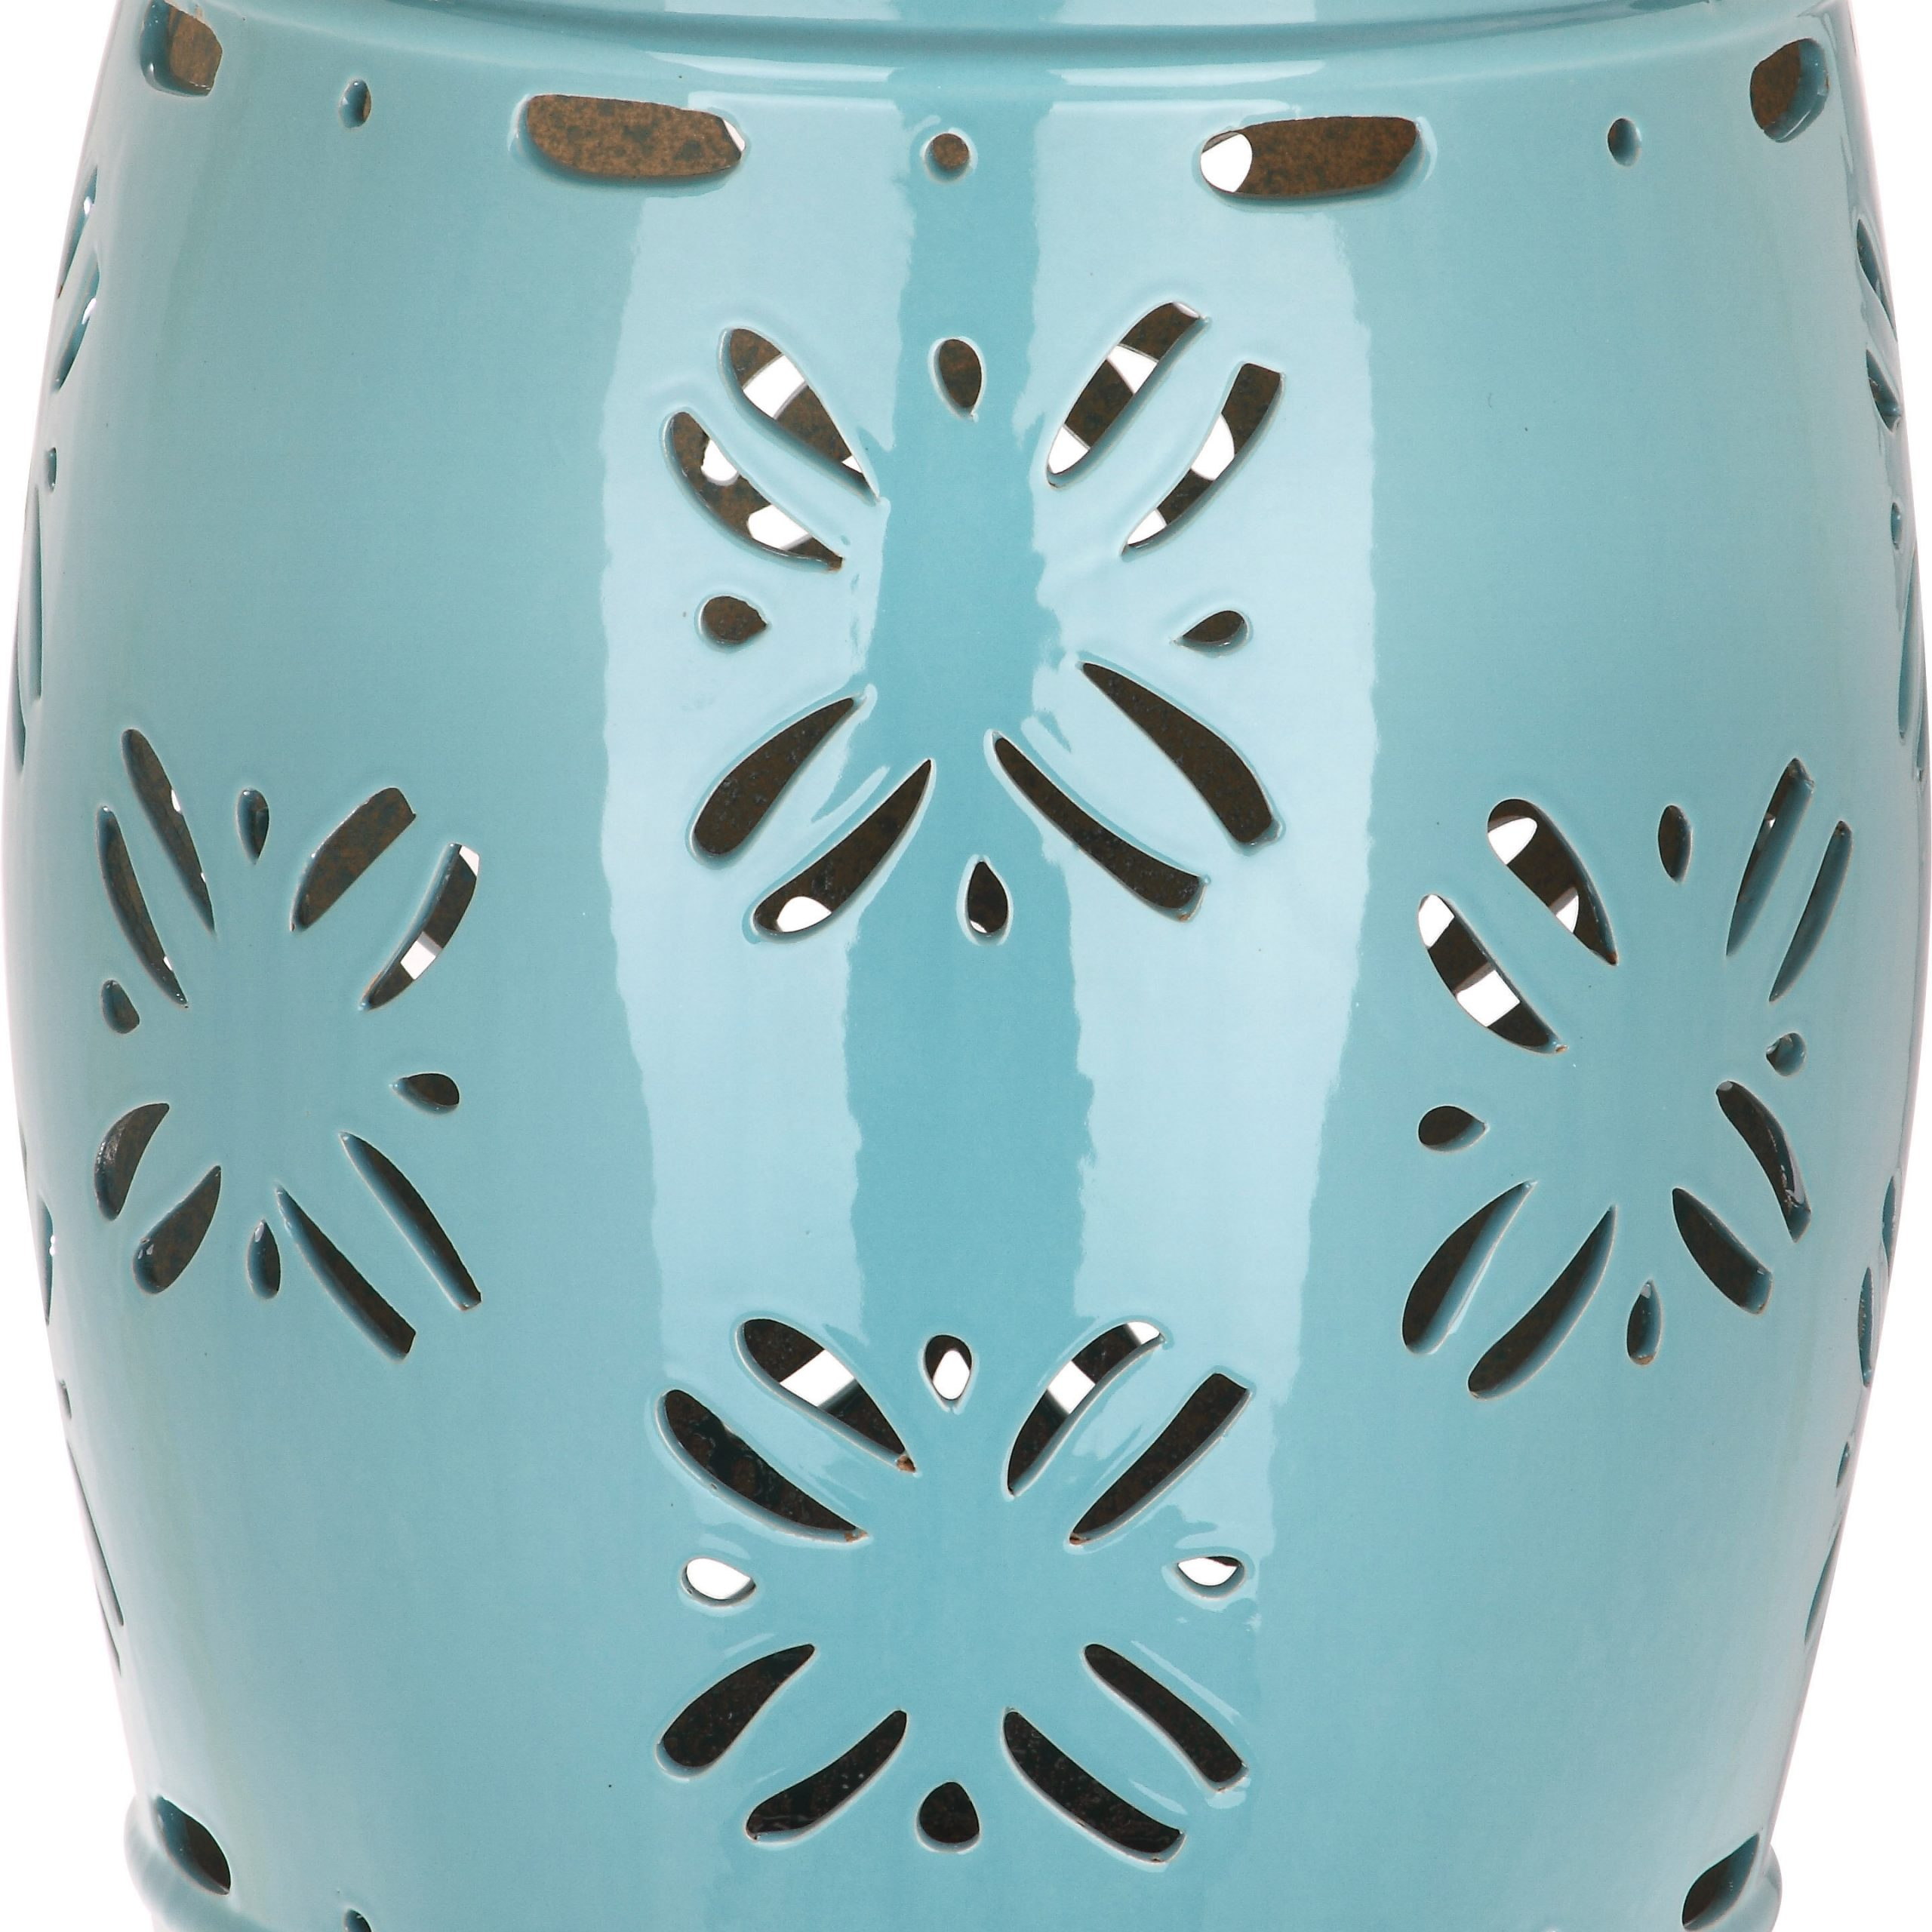 Blue Ceramic Garden Stools You'Ll Love In 2020   Wayfair With Regard To Kujawa Ceramic Garden Stools (View 13 of 25)